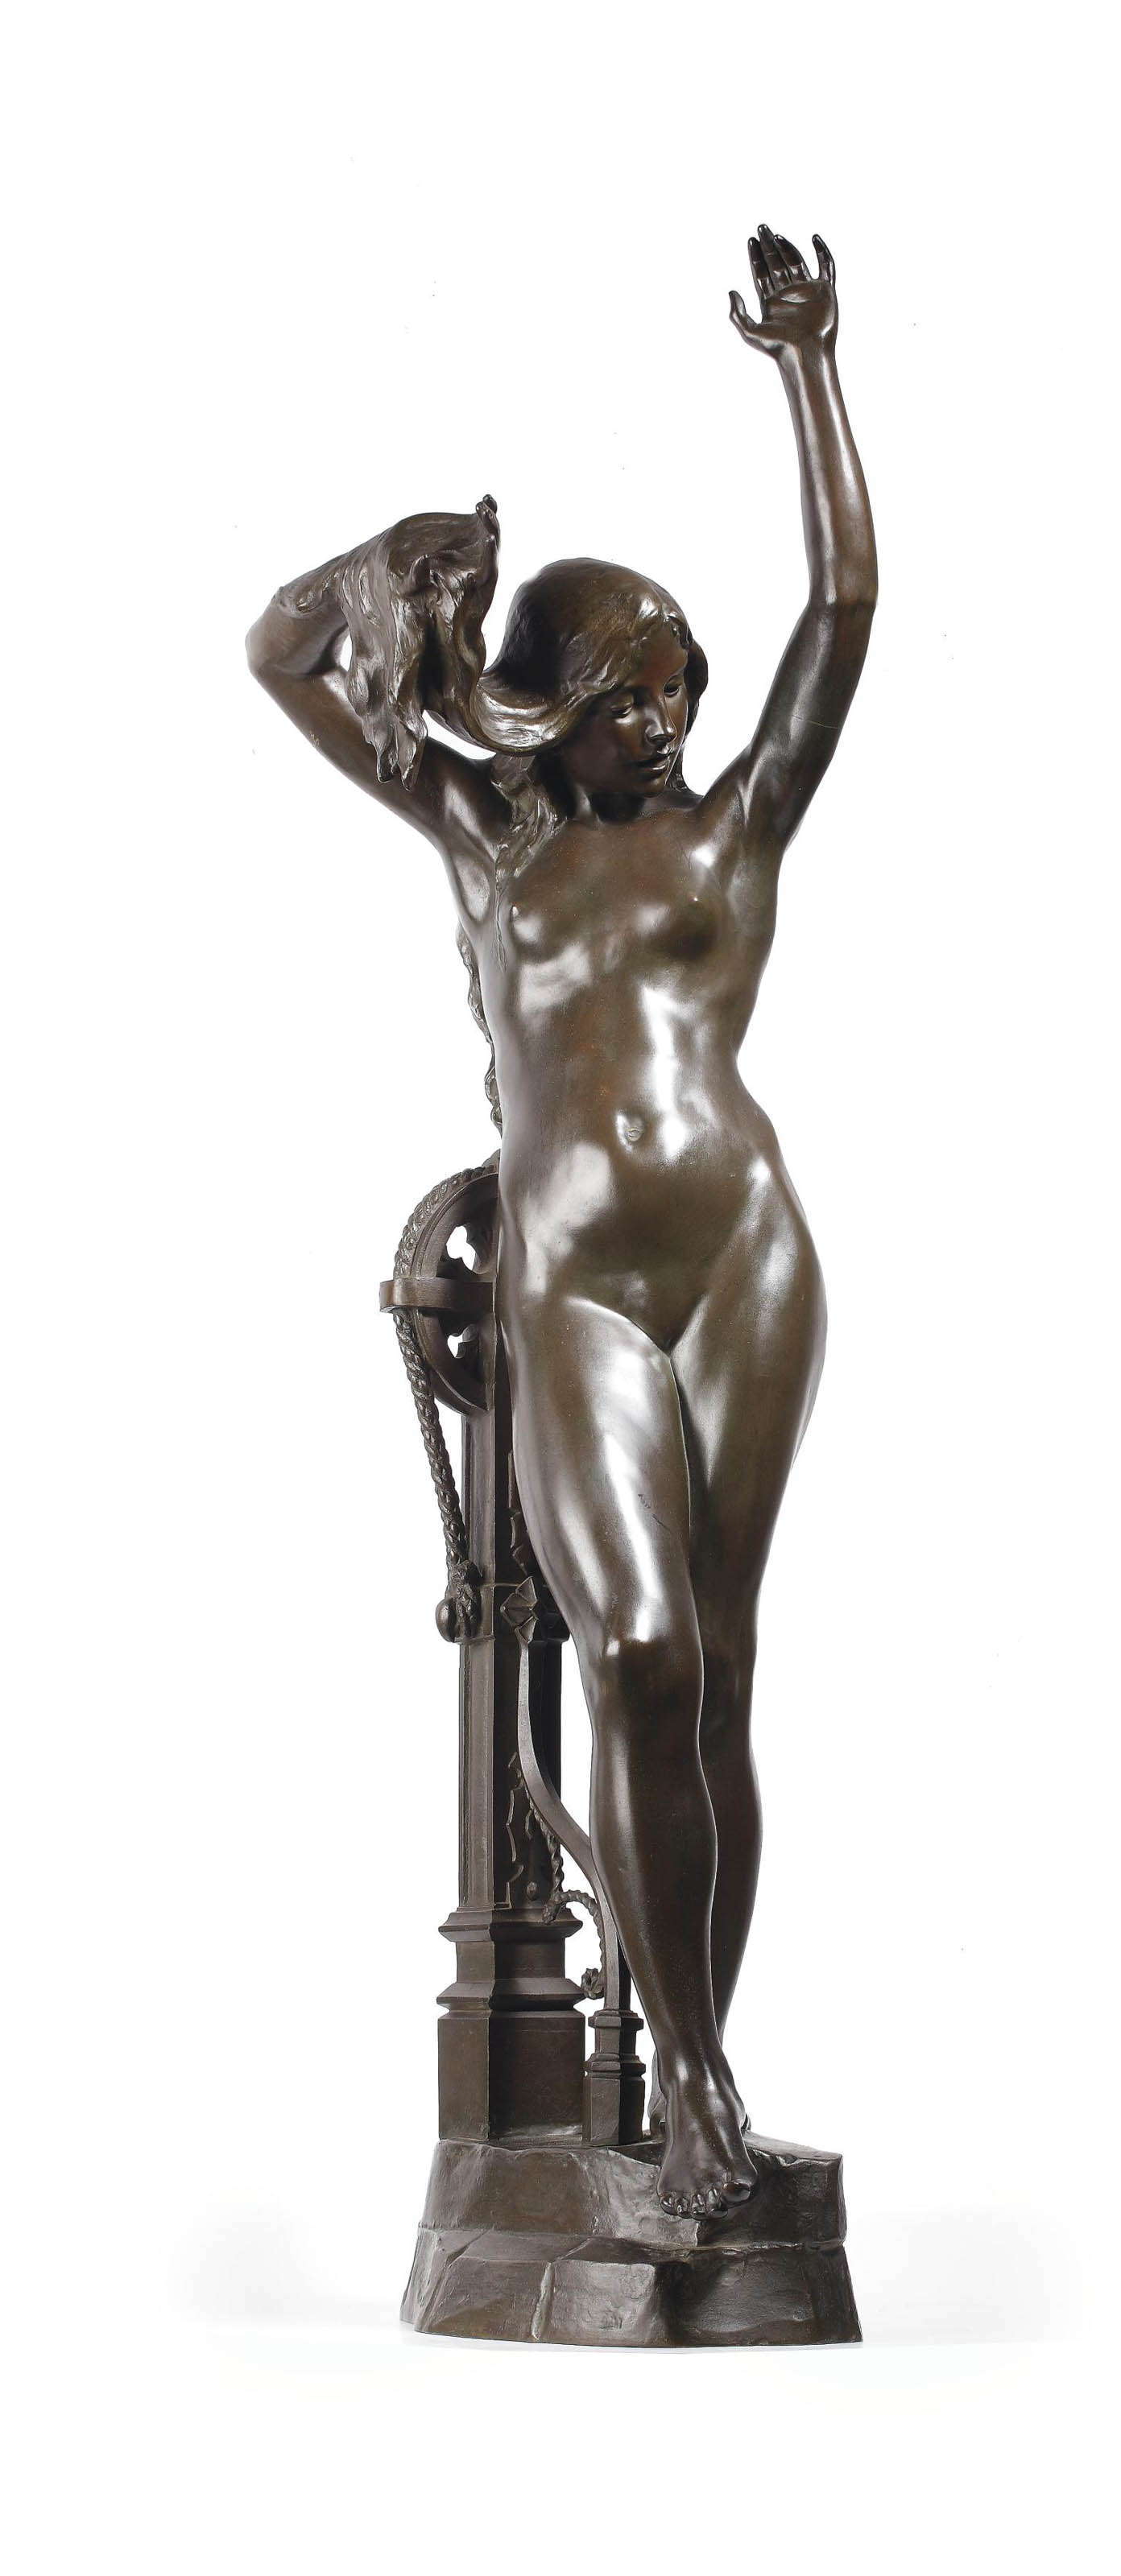 Ams Nude a bronze of a nude female figure standing near a well | from